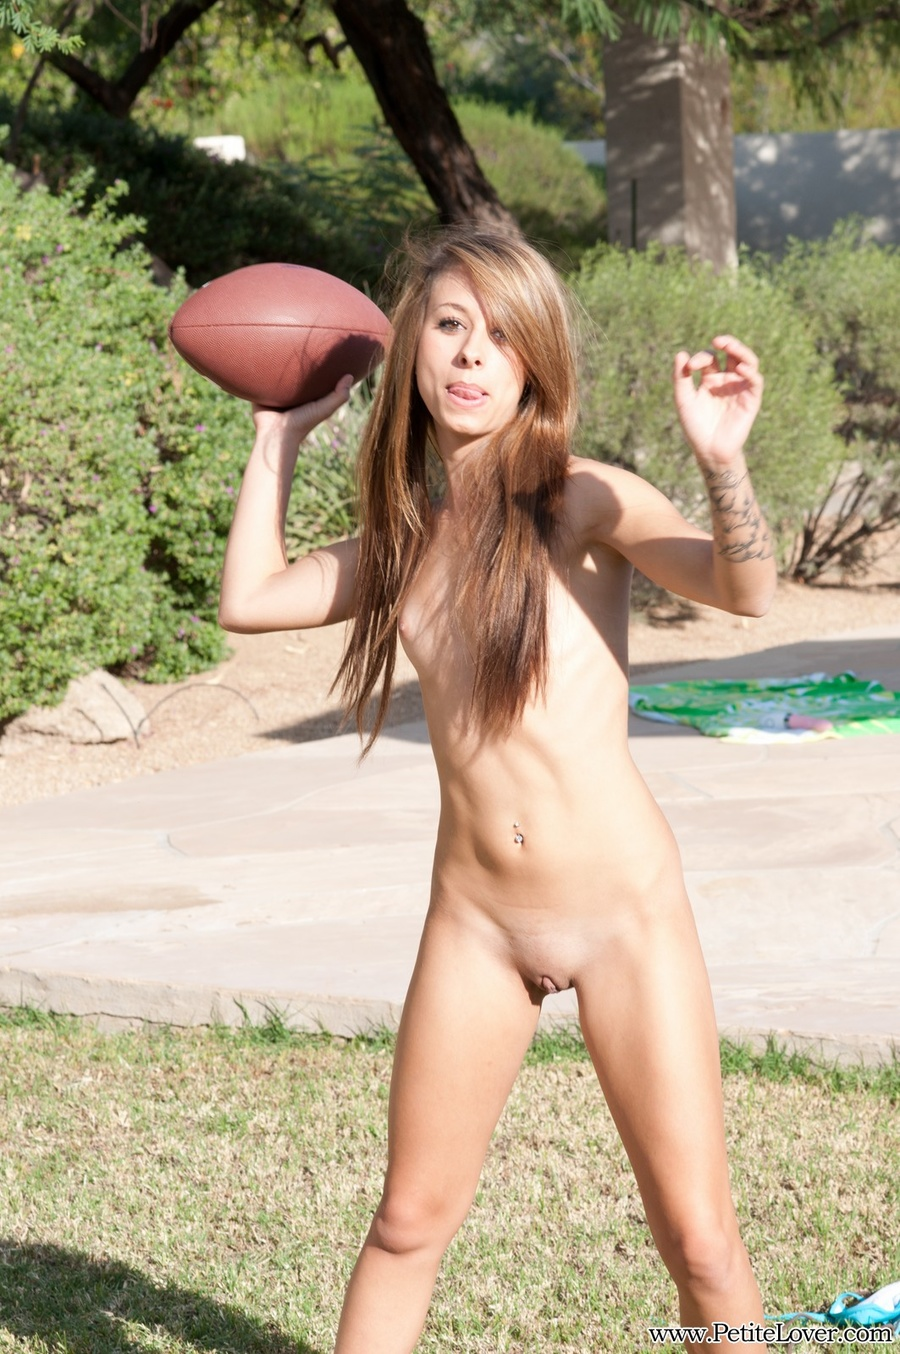 Naked Women Football